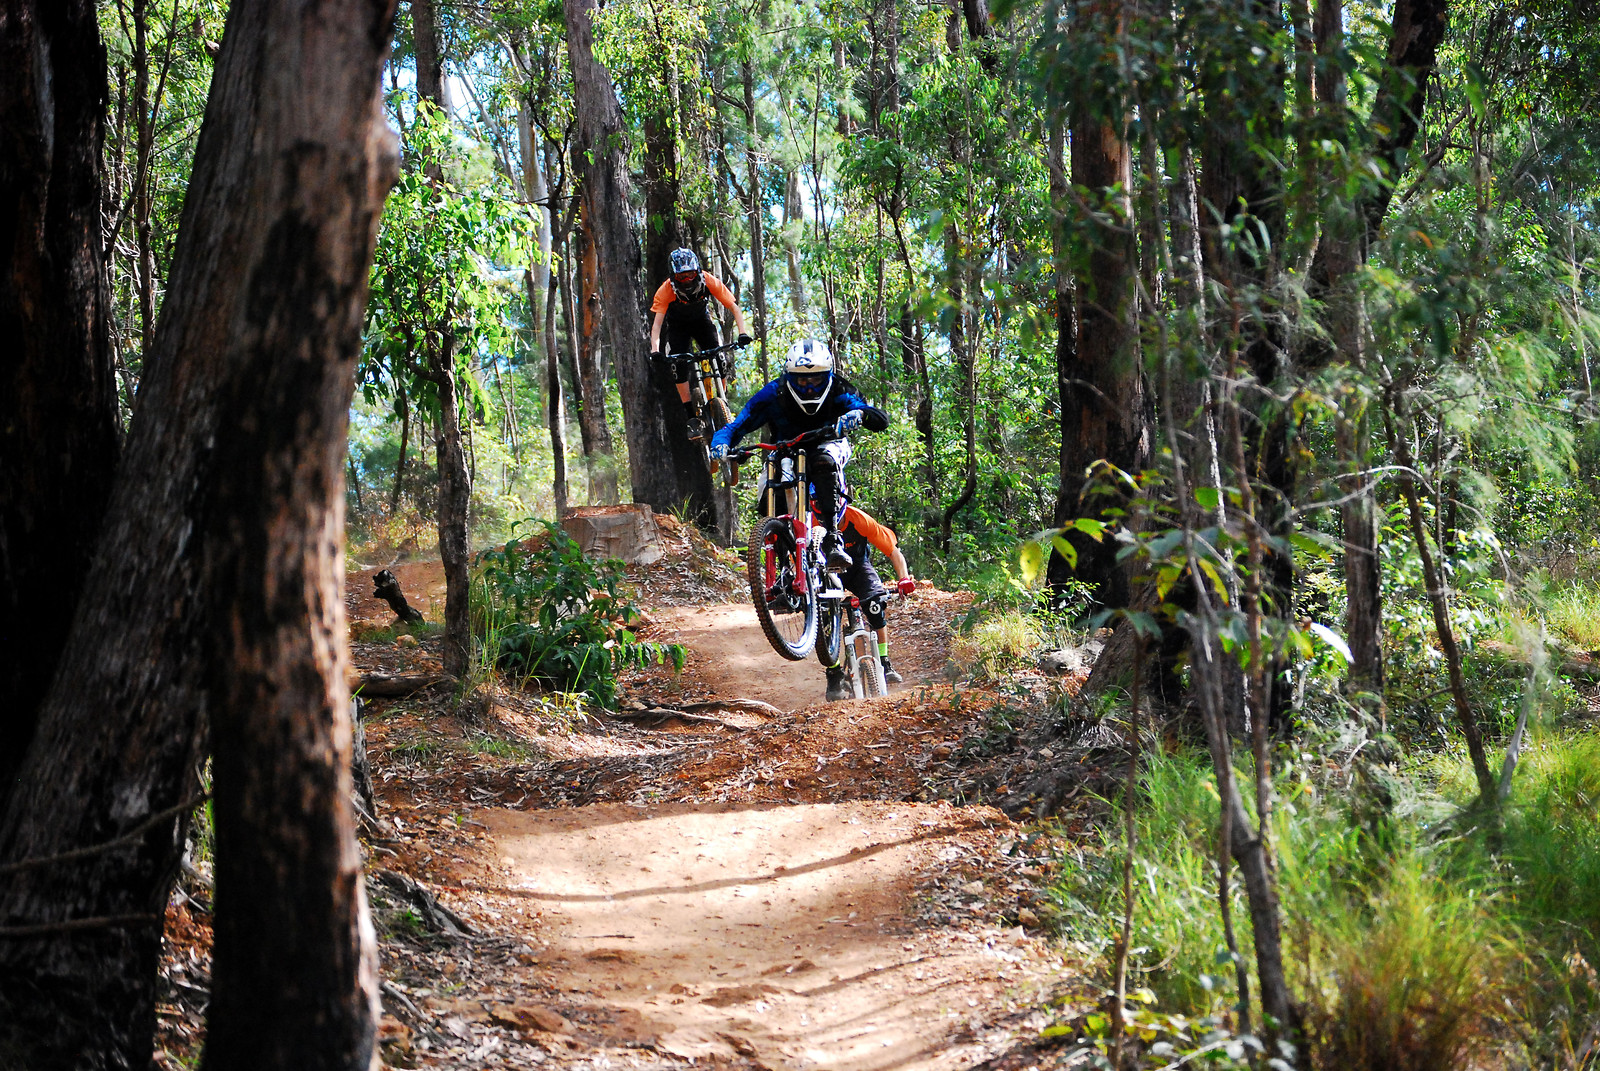 DSC 0009 - blackdiamondmtb - Mountain Biking Pictures - Vital MTB